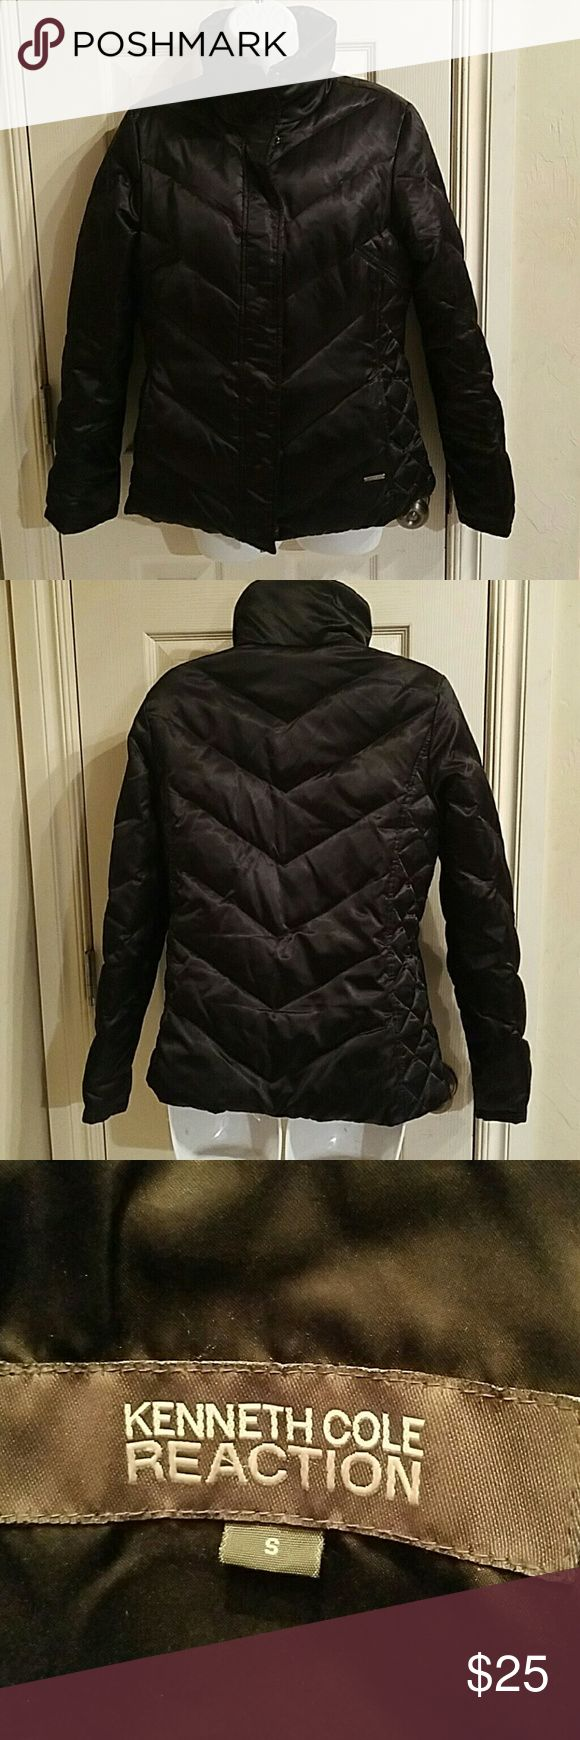 KENNETH COLE REACTION,  LADIES DOWN JACKET Ladies black Kenneth Cole Reaction black  quilted jacket with side pockets with zip and snap closures in excellent condition with no flaws size small. It's machine washable the outer shell is 100% polyester and the lining it's filled with 60% goose down and 40% feathers. Measurements upon request this item is from a clean non-smoking home. Thank you for looking Kenneth Cole Reaction Jackets & Coats